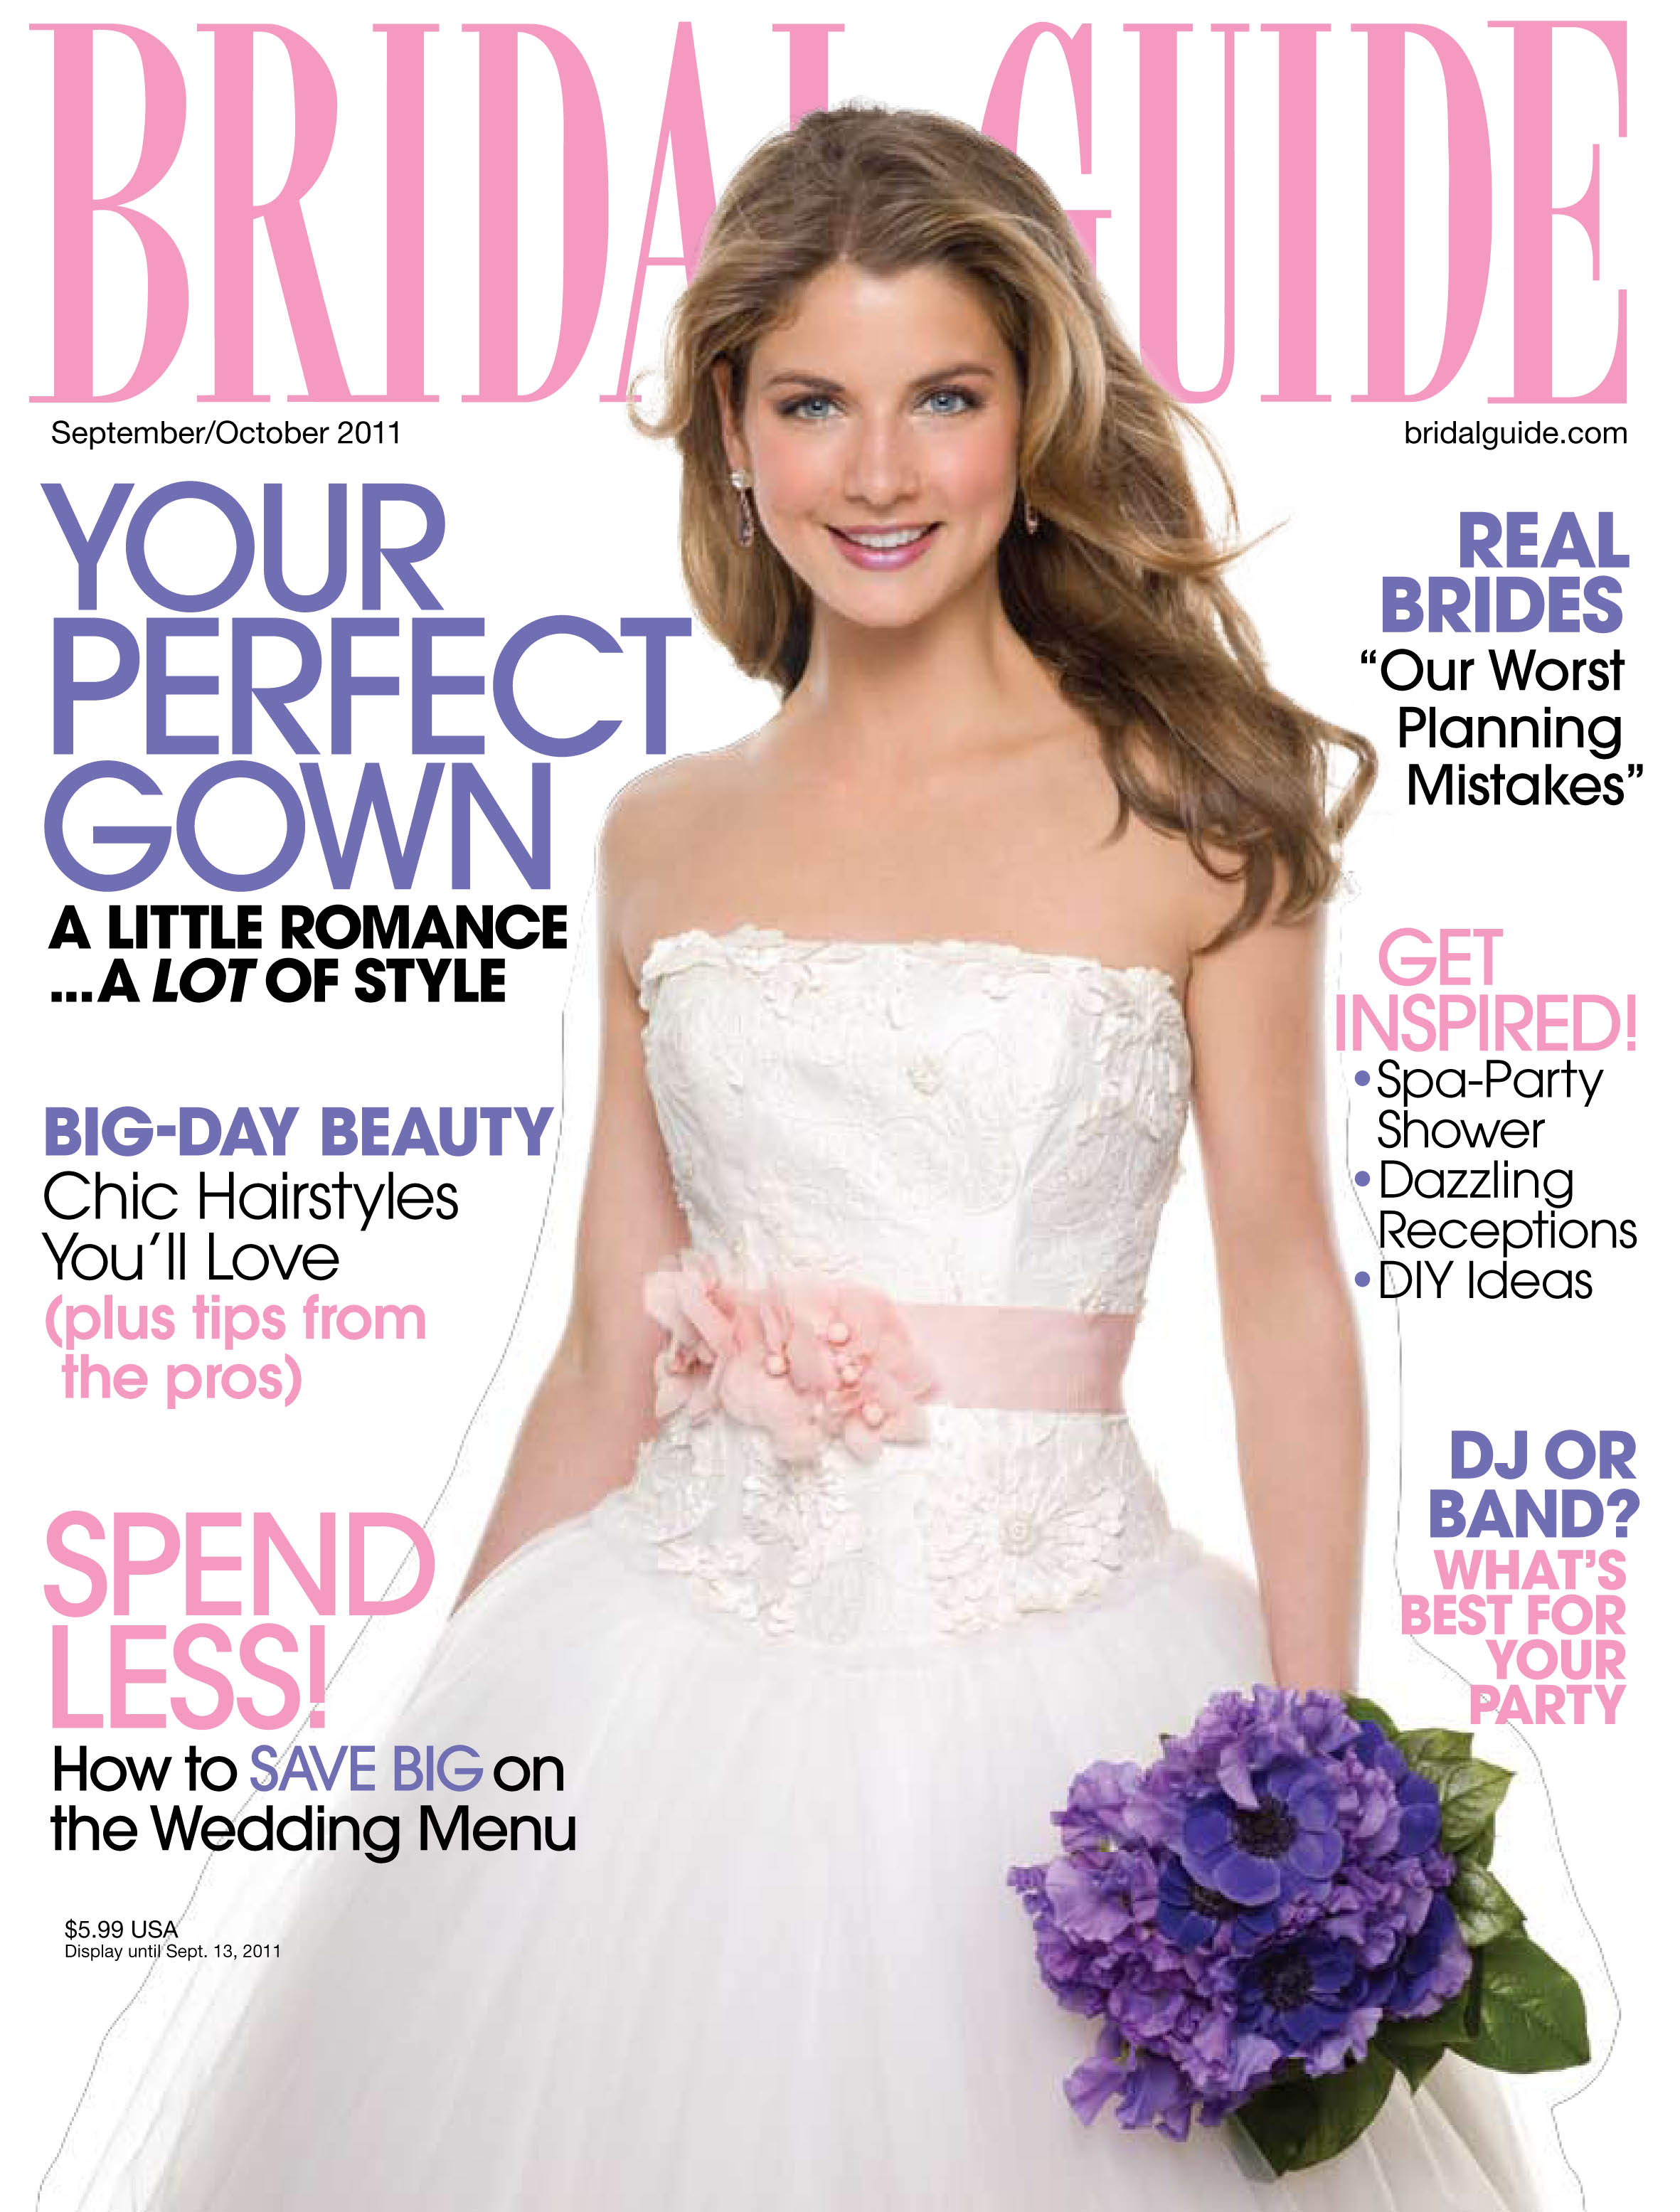 Free subscription to bridal guide magazine hunt4freebies.